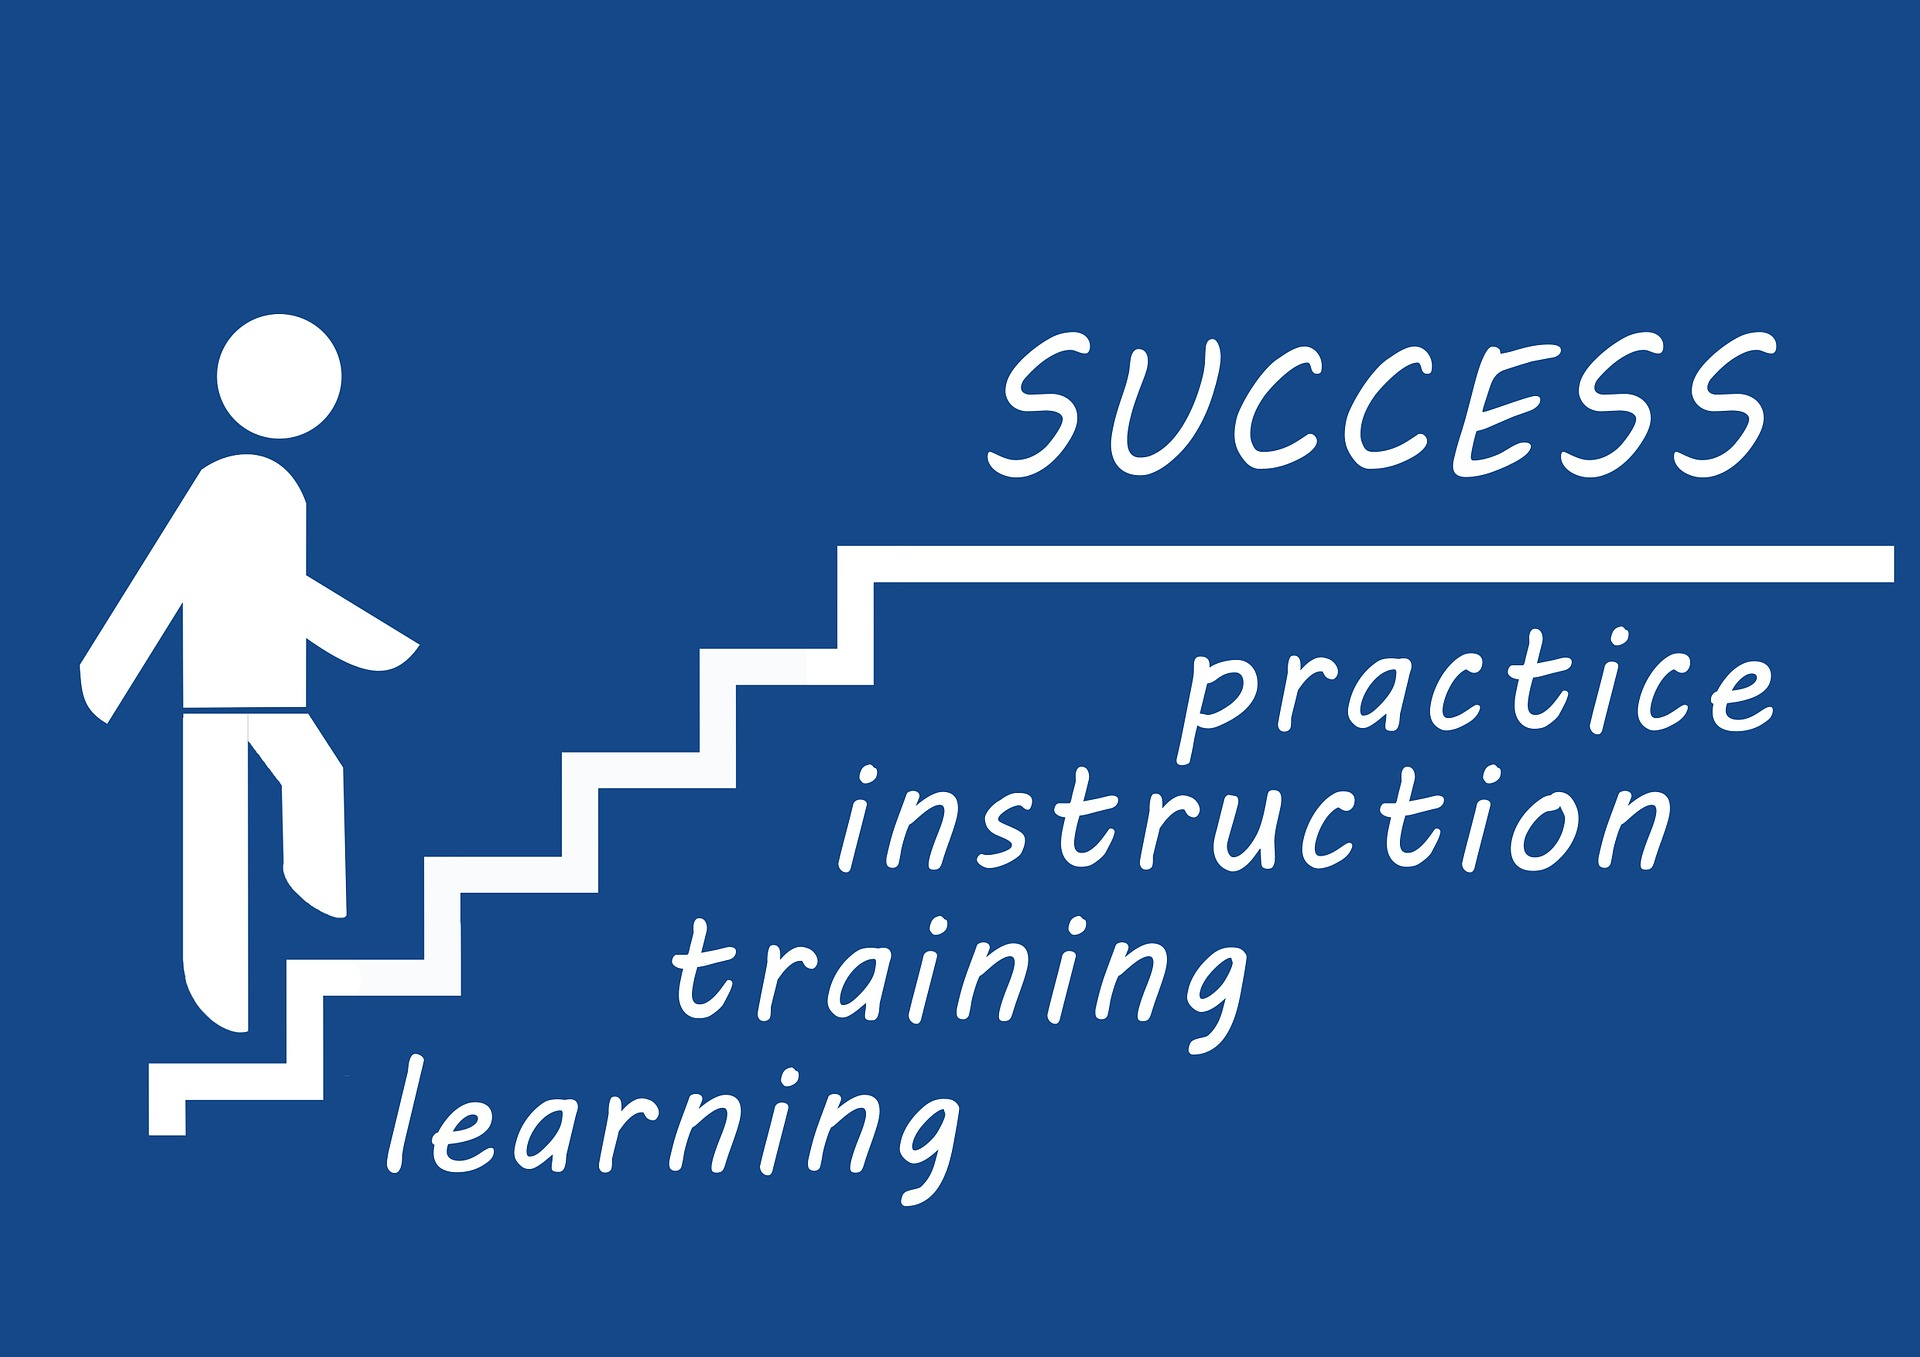 how will you use this learning to improve both personally and professionally